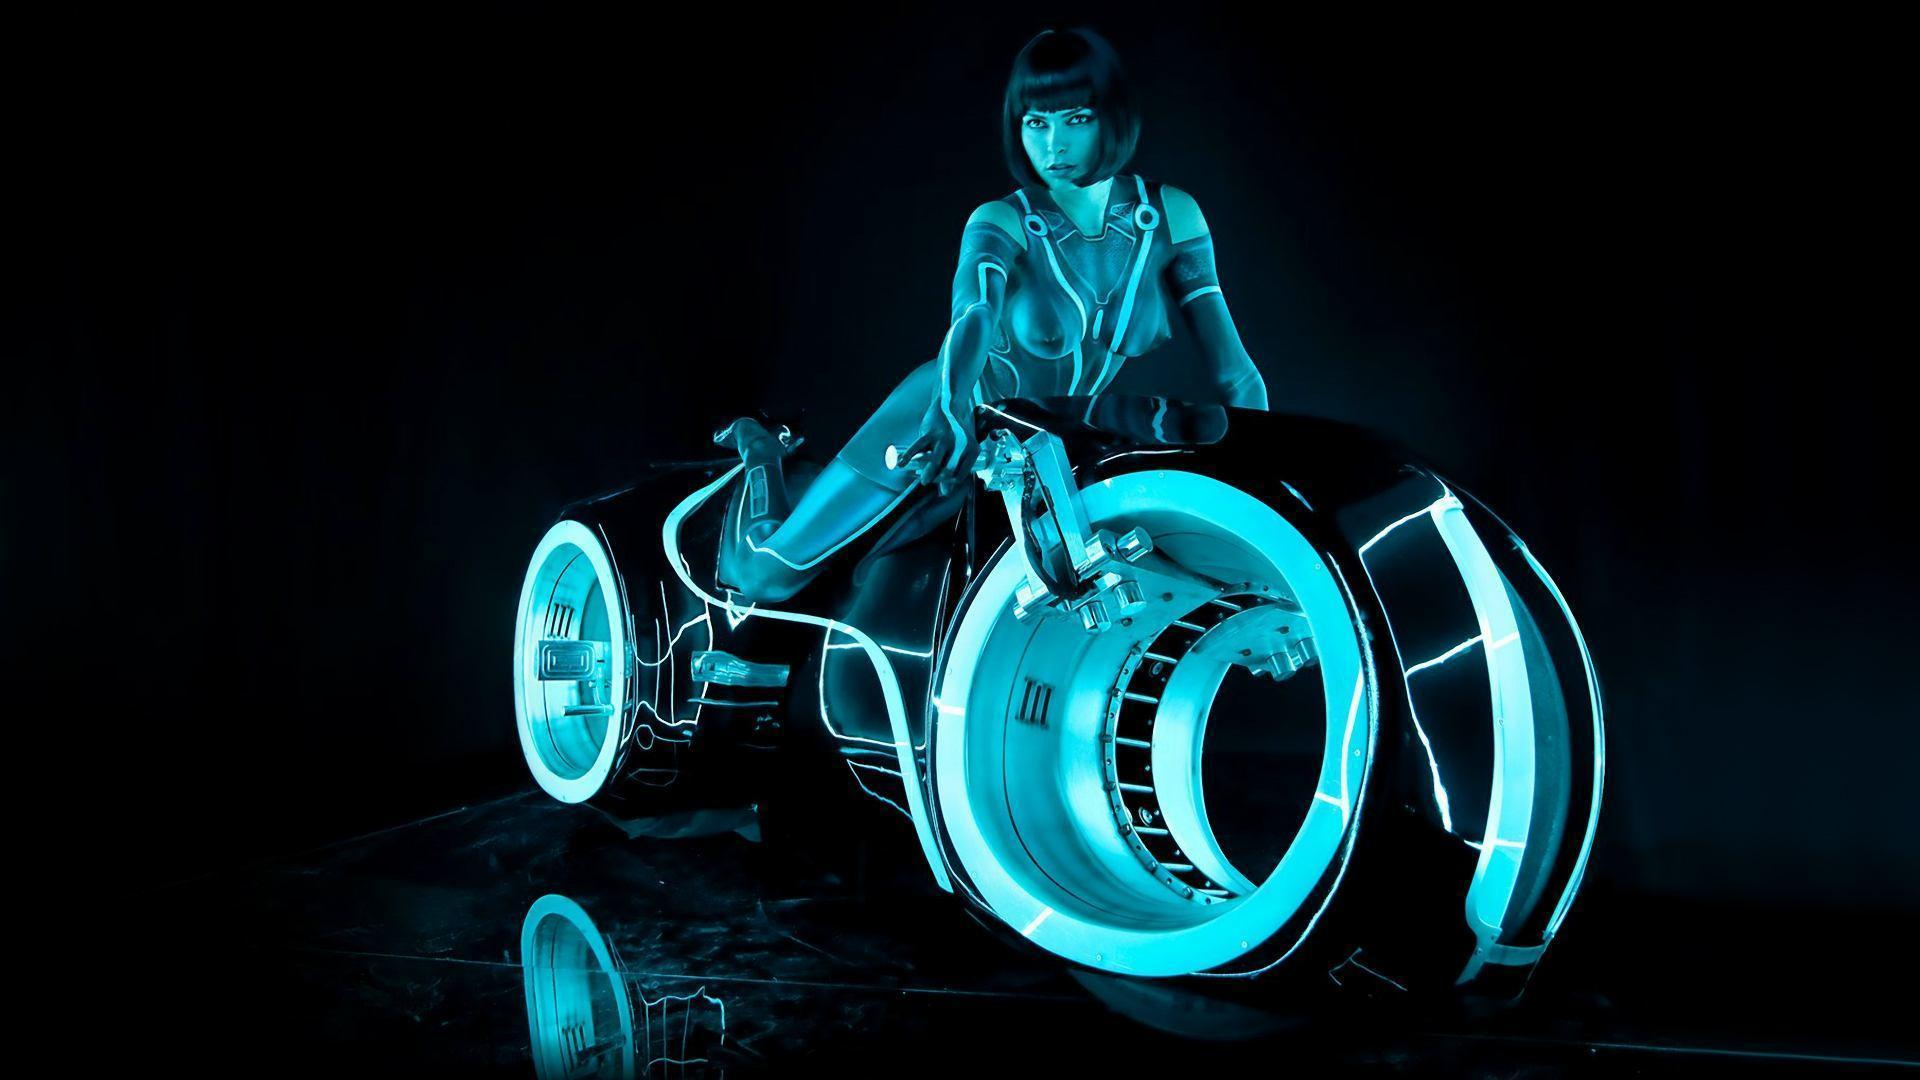 Wallpaper 3d Bike Tron Legacy Download: Tron Wallpapers